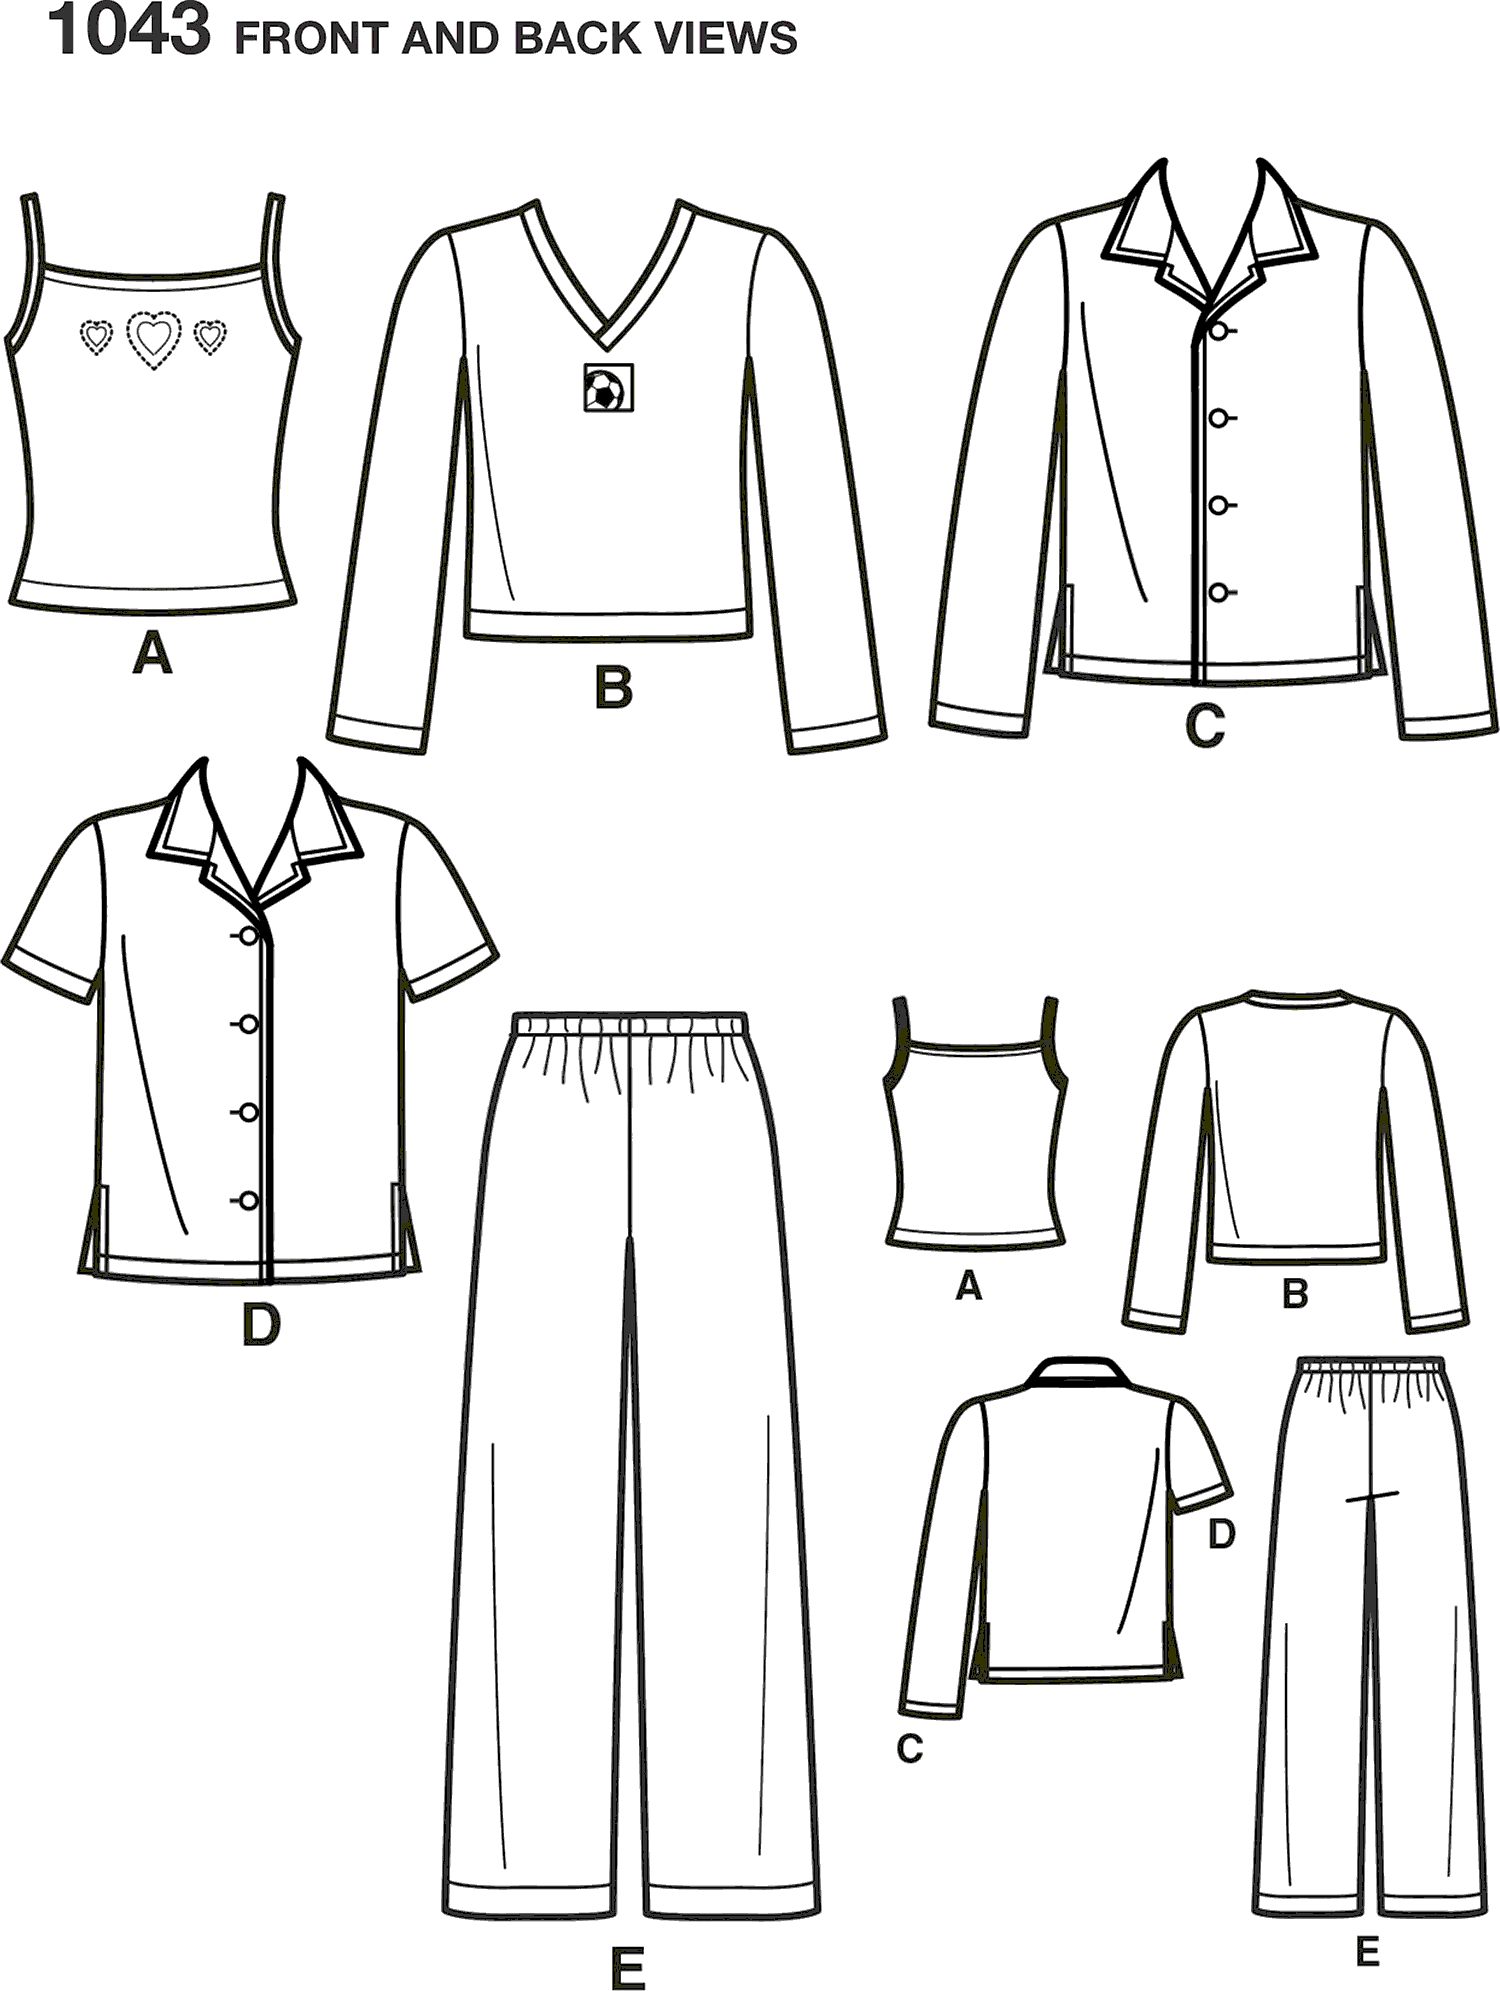 Simplicity Pattern 1043 Childs Girls and Boys Separates Line Art From Patternsandplains.com